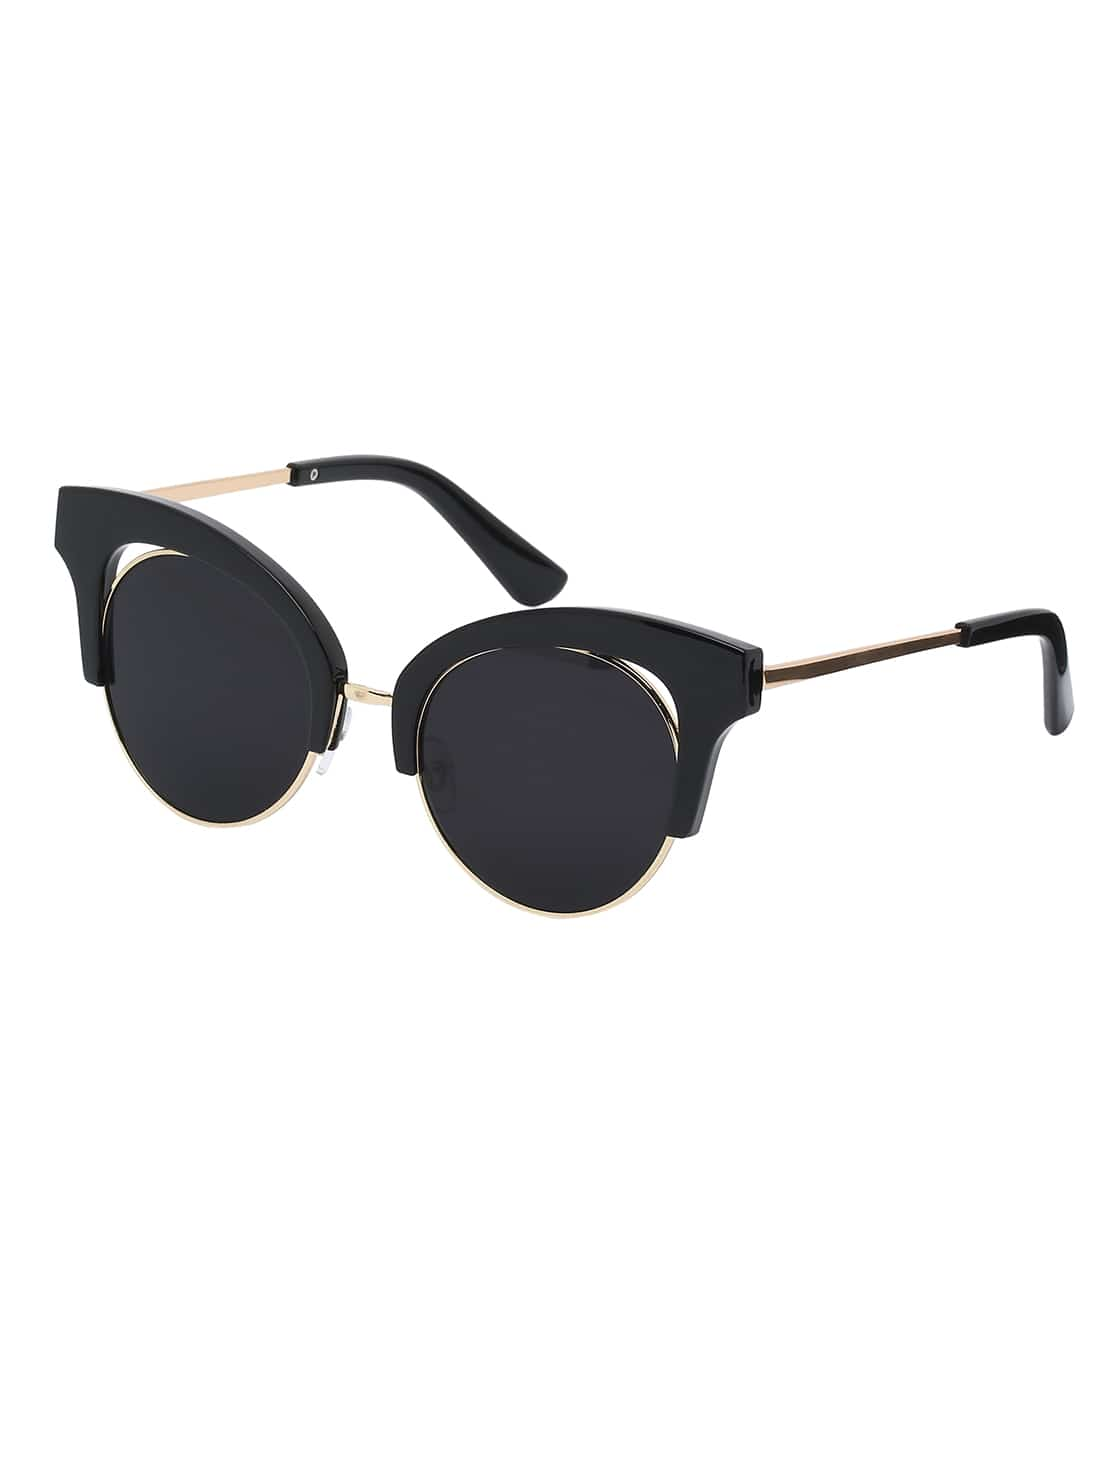 Black Frame Black Cat Eye Lenses Sunglasses -SheIn(Sheinside)